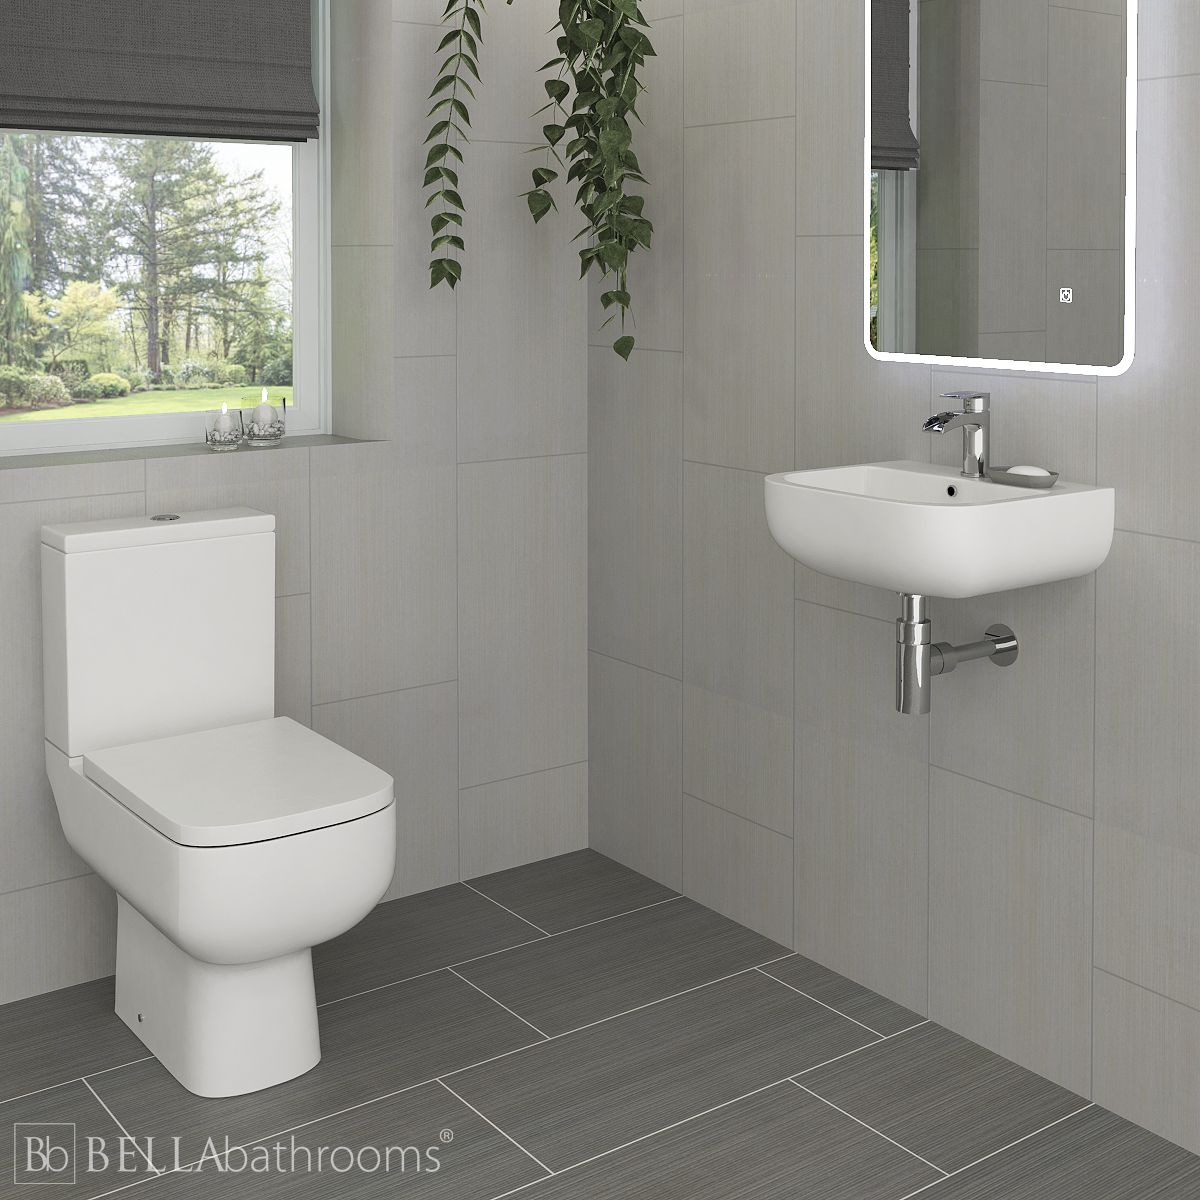 A small toilet and wall hung basin in a cloakroom